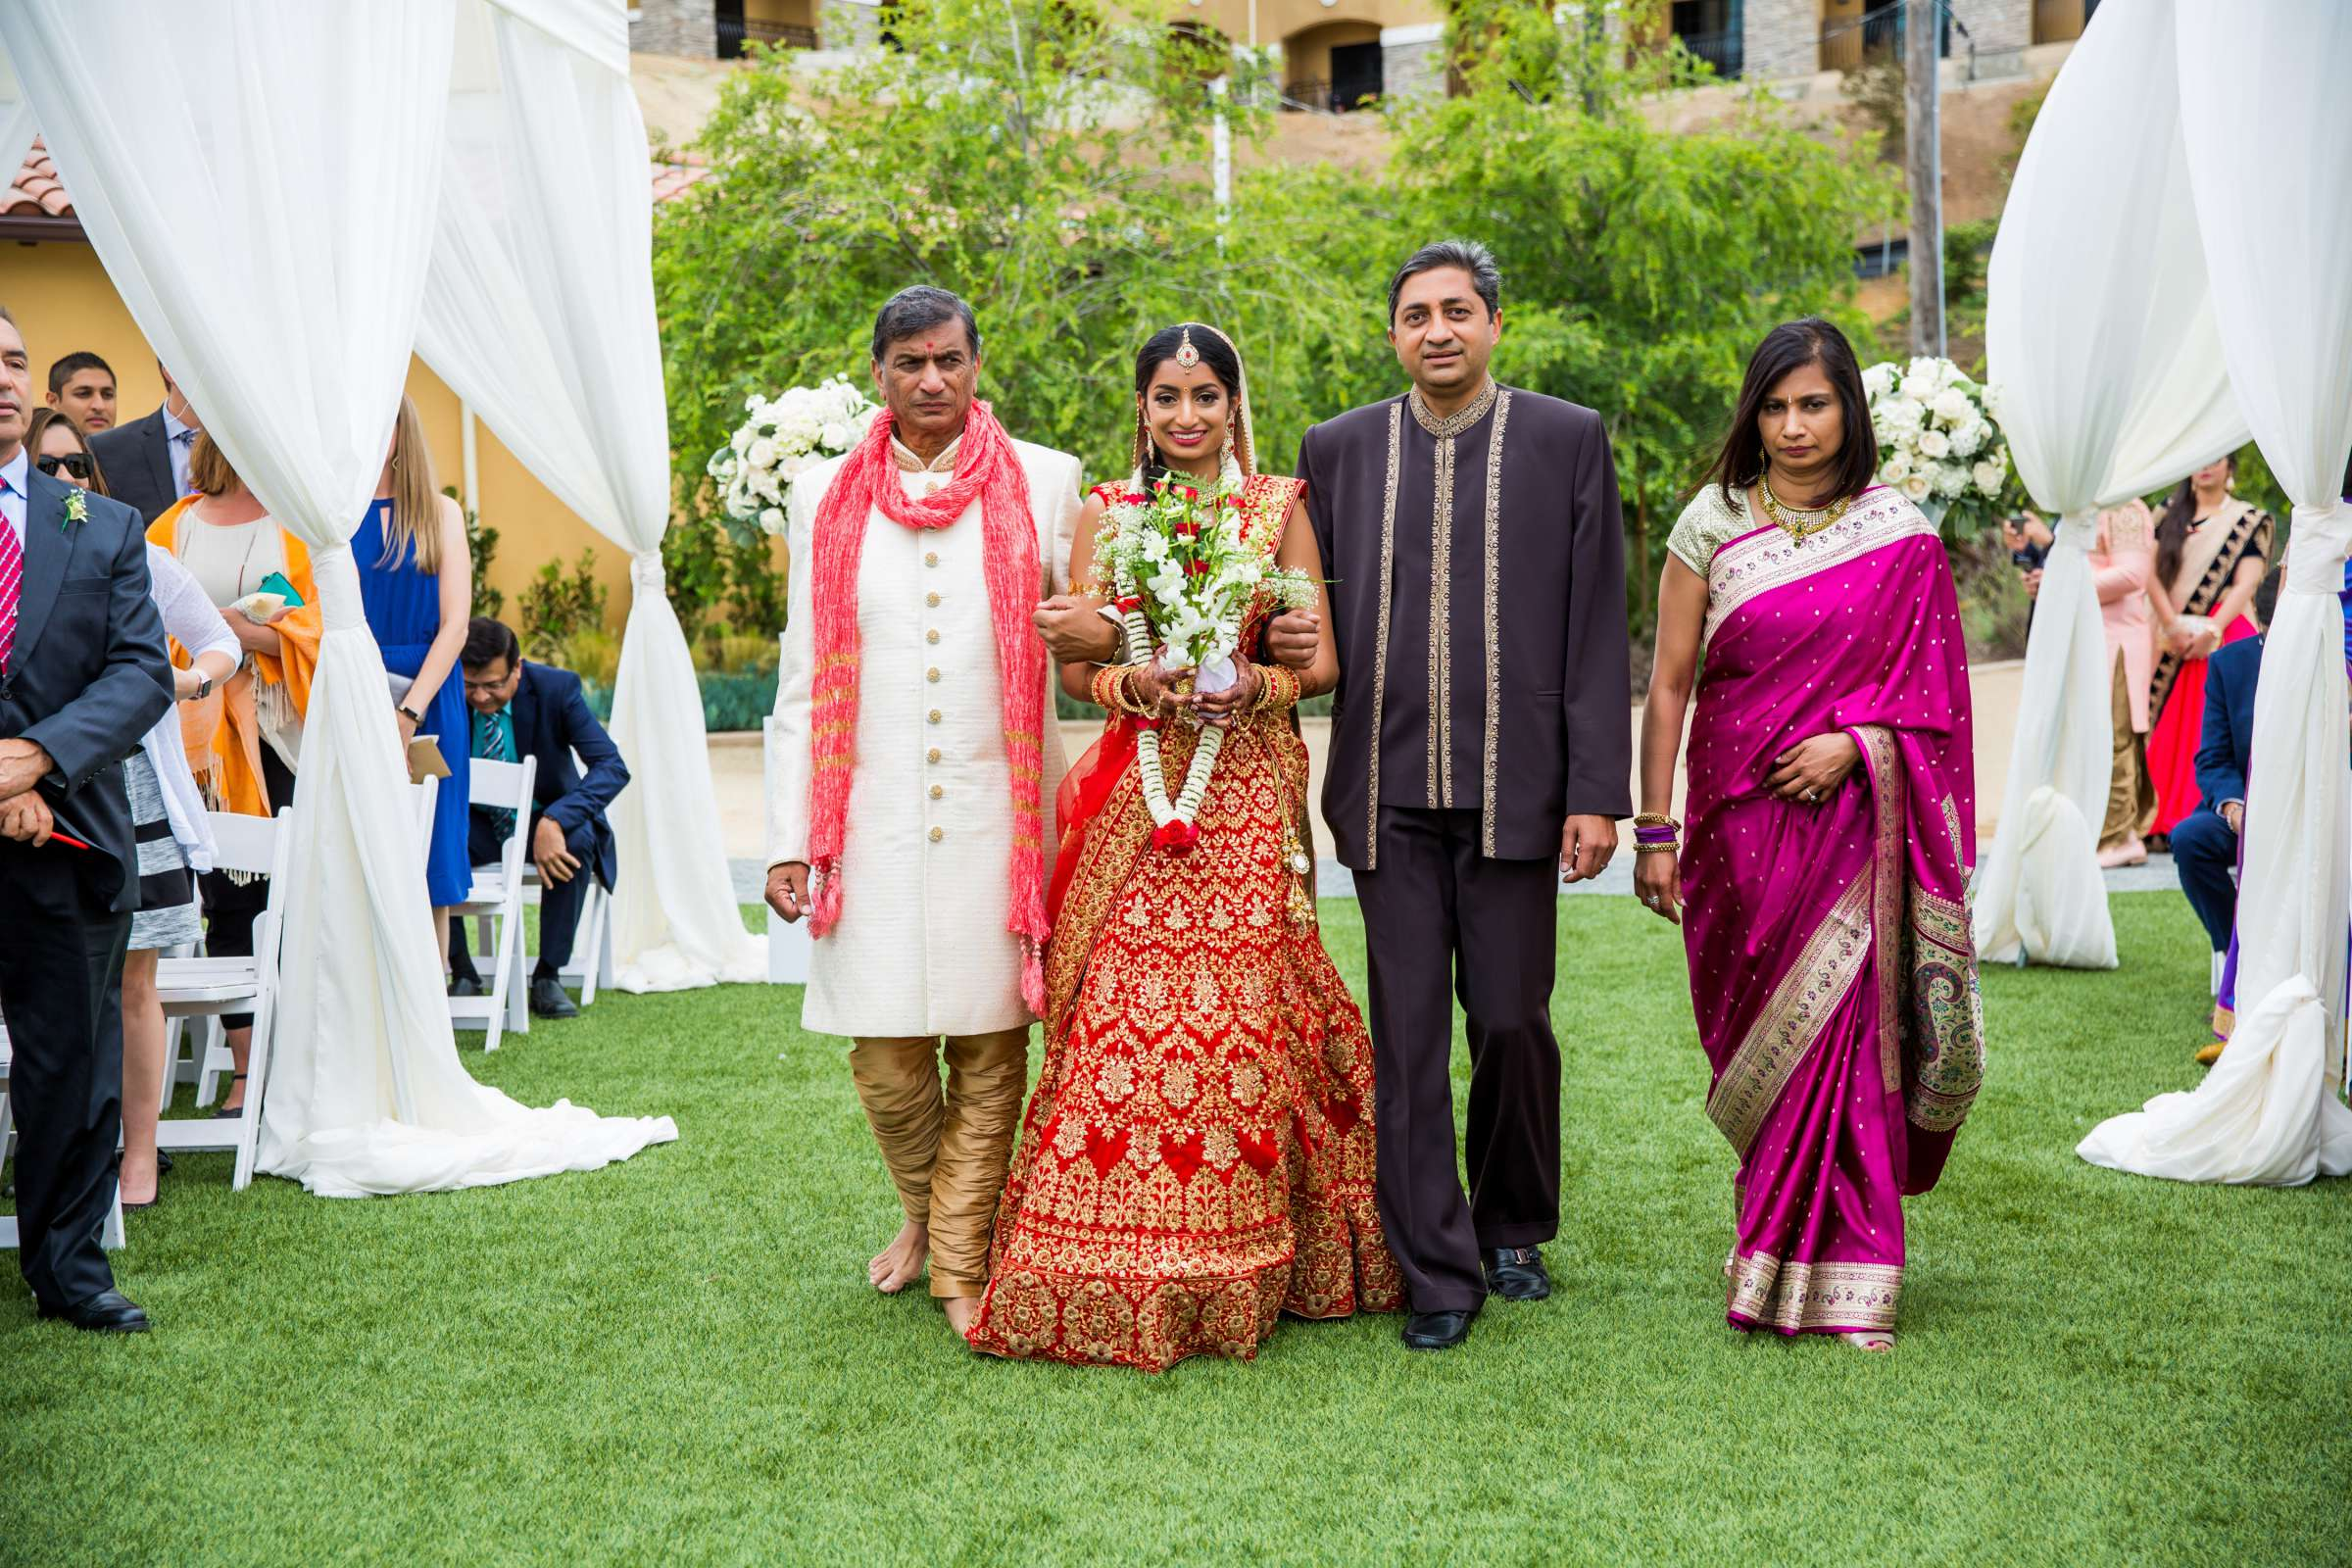 The Westin Carlsbad Resort and Spa Wedding coordinated by Shilpa Patel Events, Ami and Amit Wedding Photo #204 by True Photography